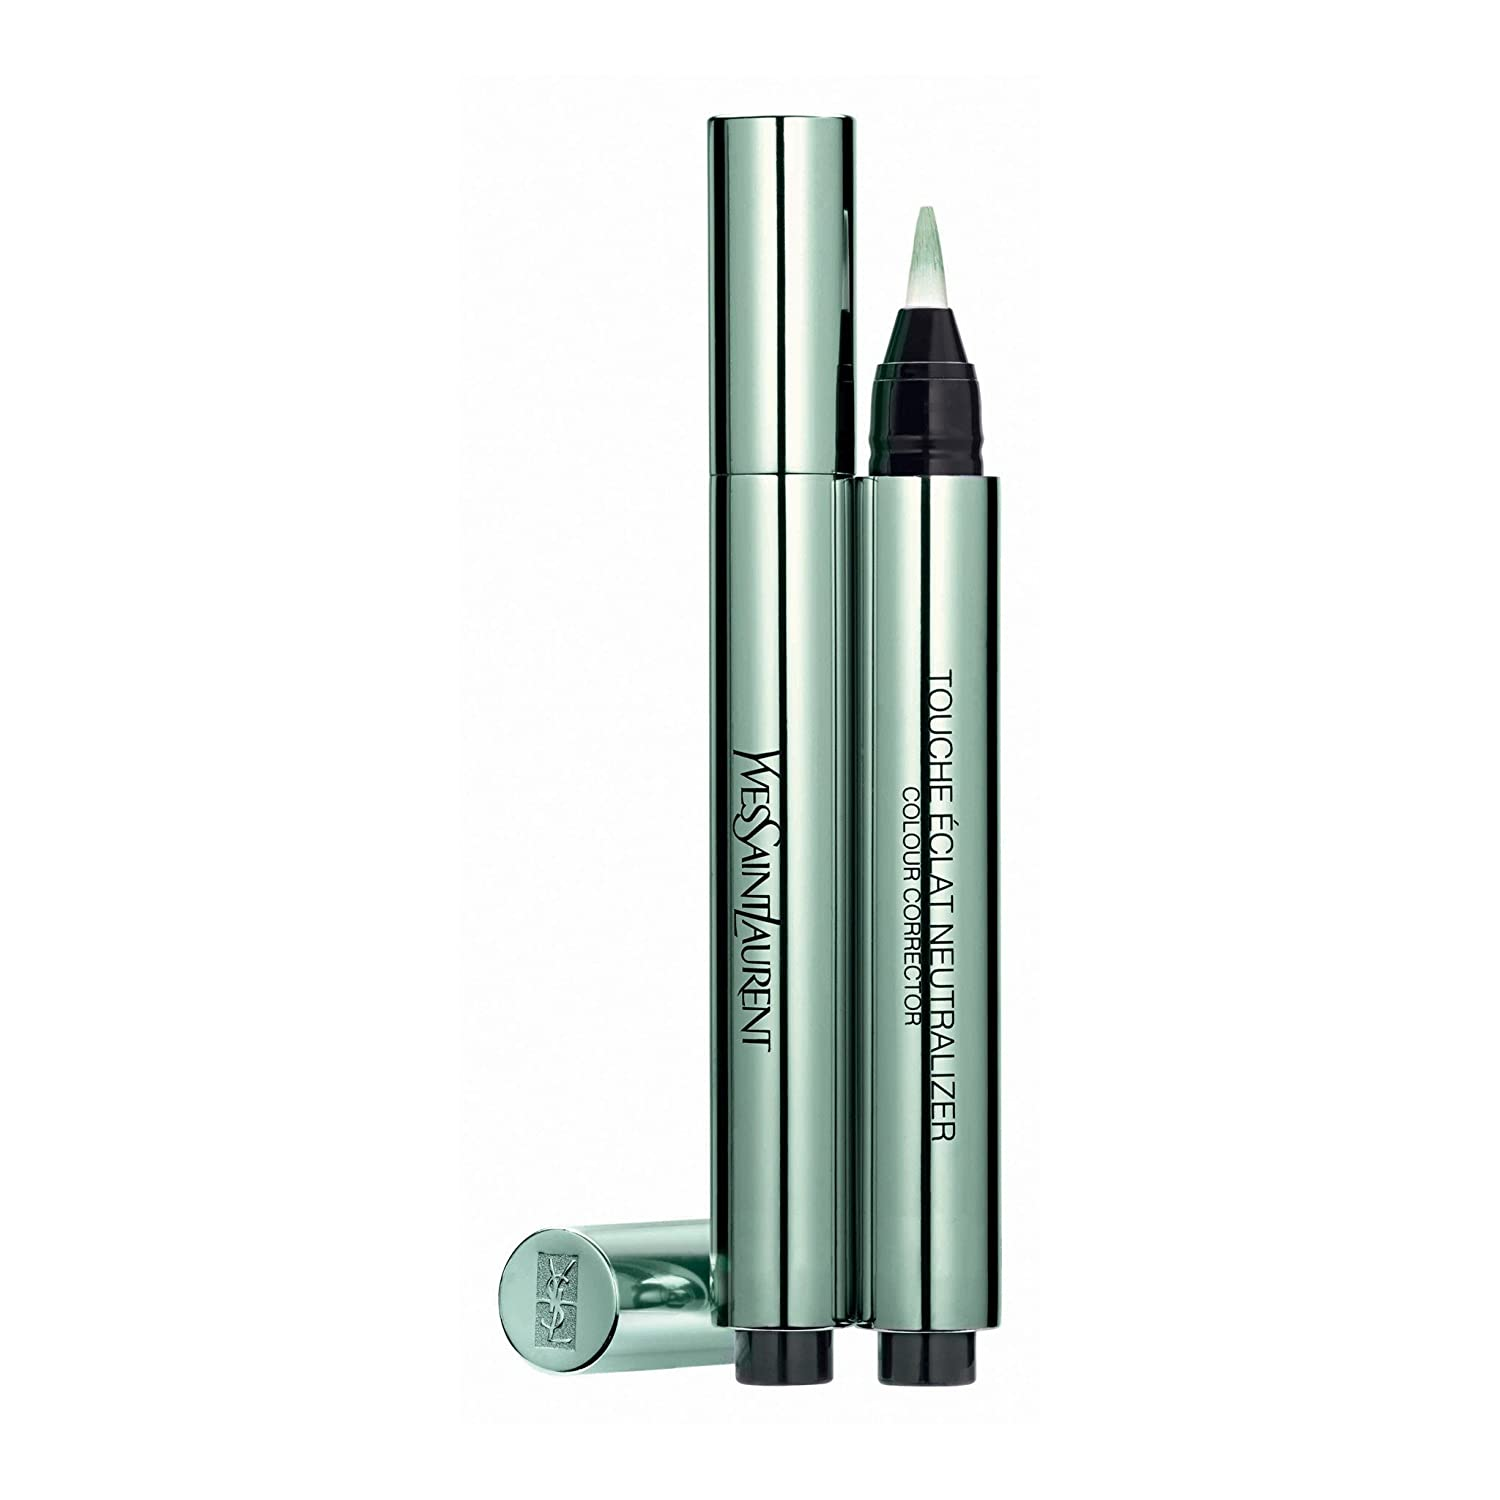 Yves Saint Laurent Touche Eclat Neutralizers in Green Concealer